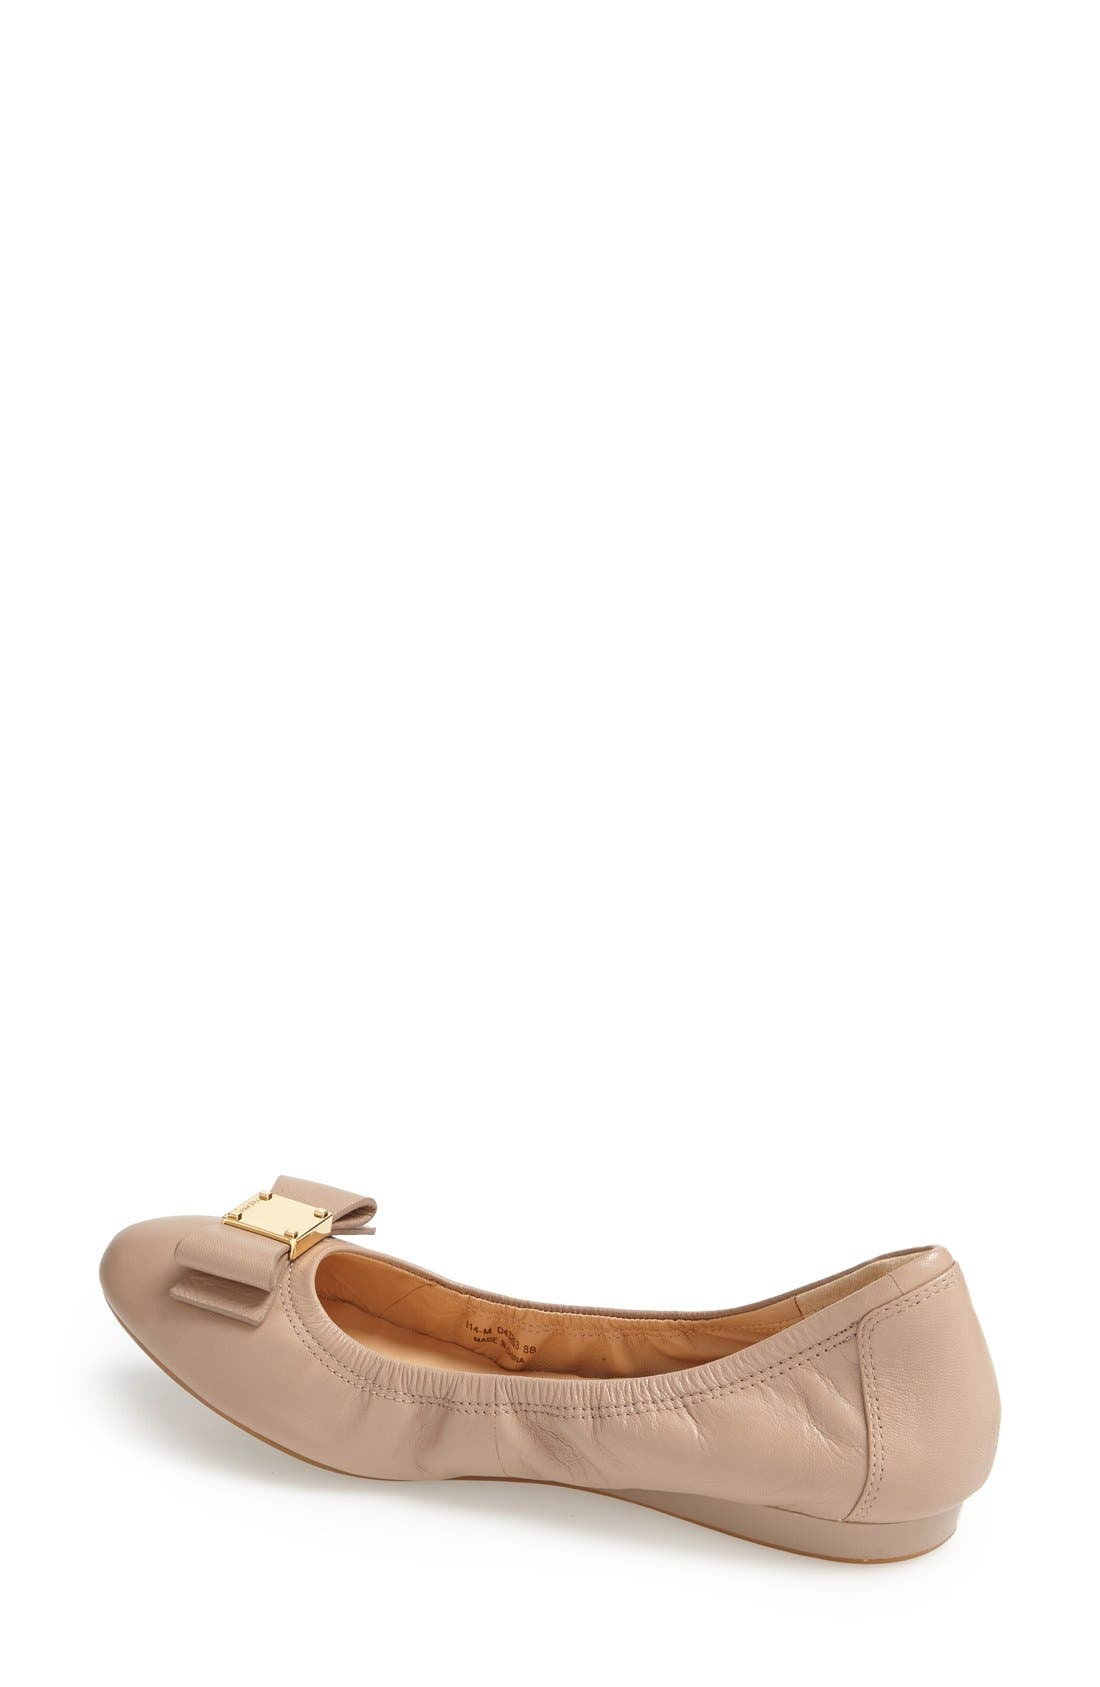 COLE HAAN, 'Tali' Bow Ballet Flat, Alternate thumbnail 2, color, MAPLE SUGAR